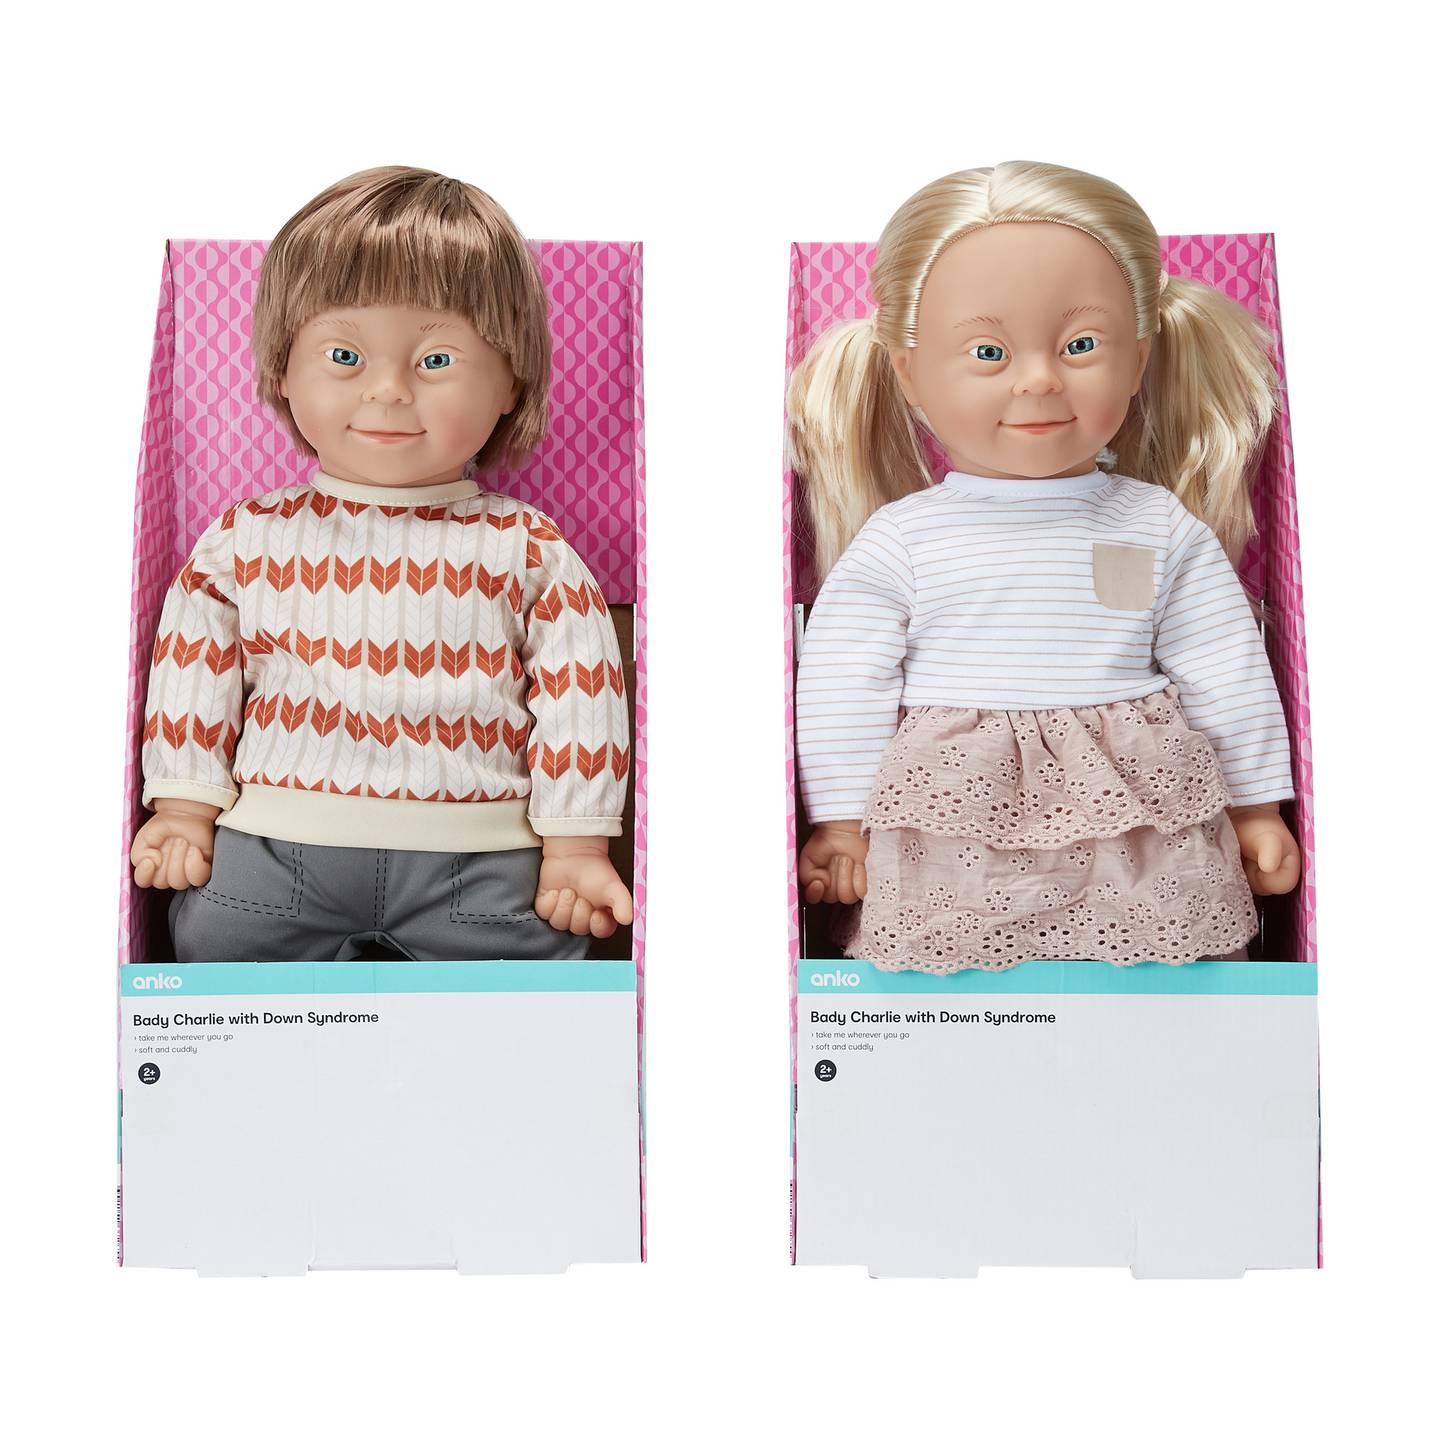 Kmart stores across New Zealand will soon be selling the 'Baby Charlie with Down Syndrome'. Photo...